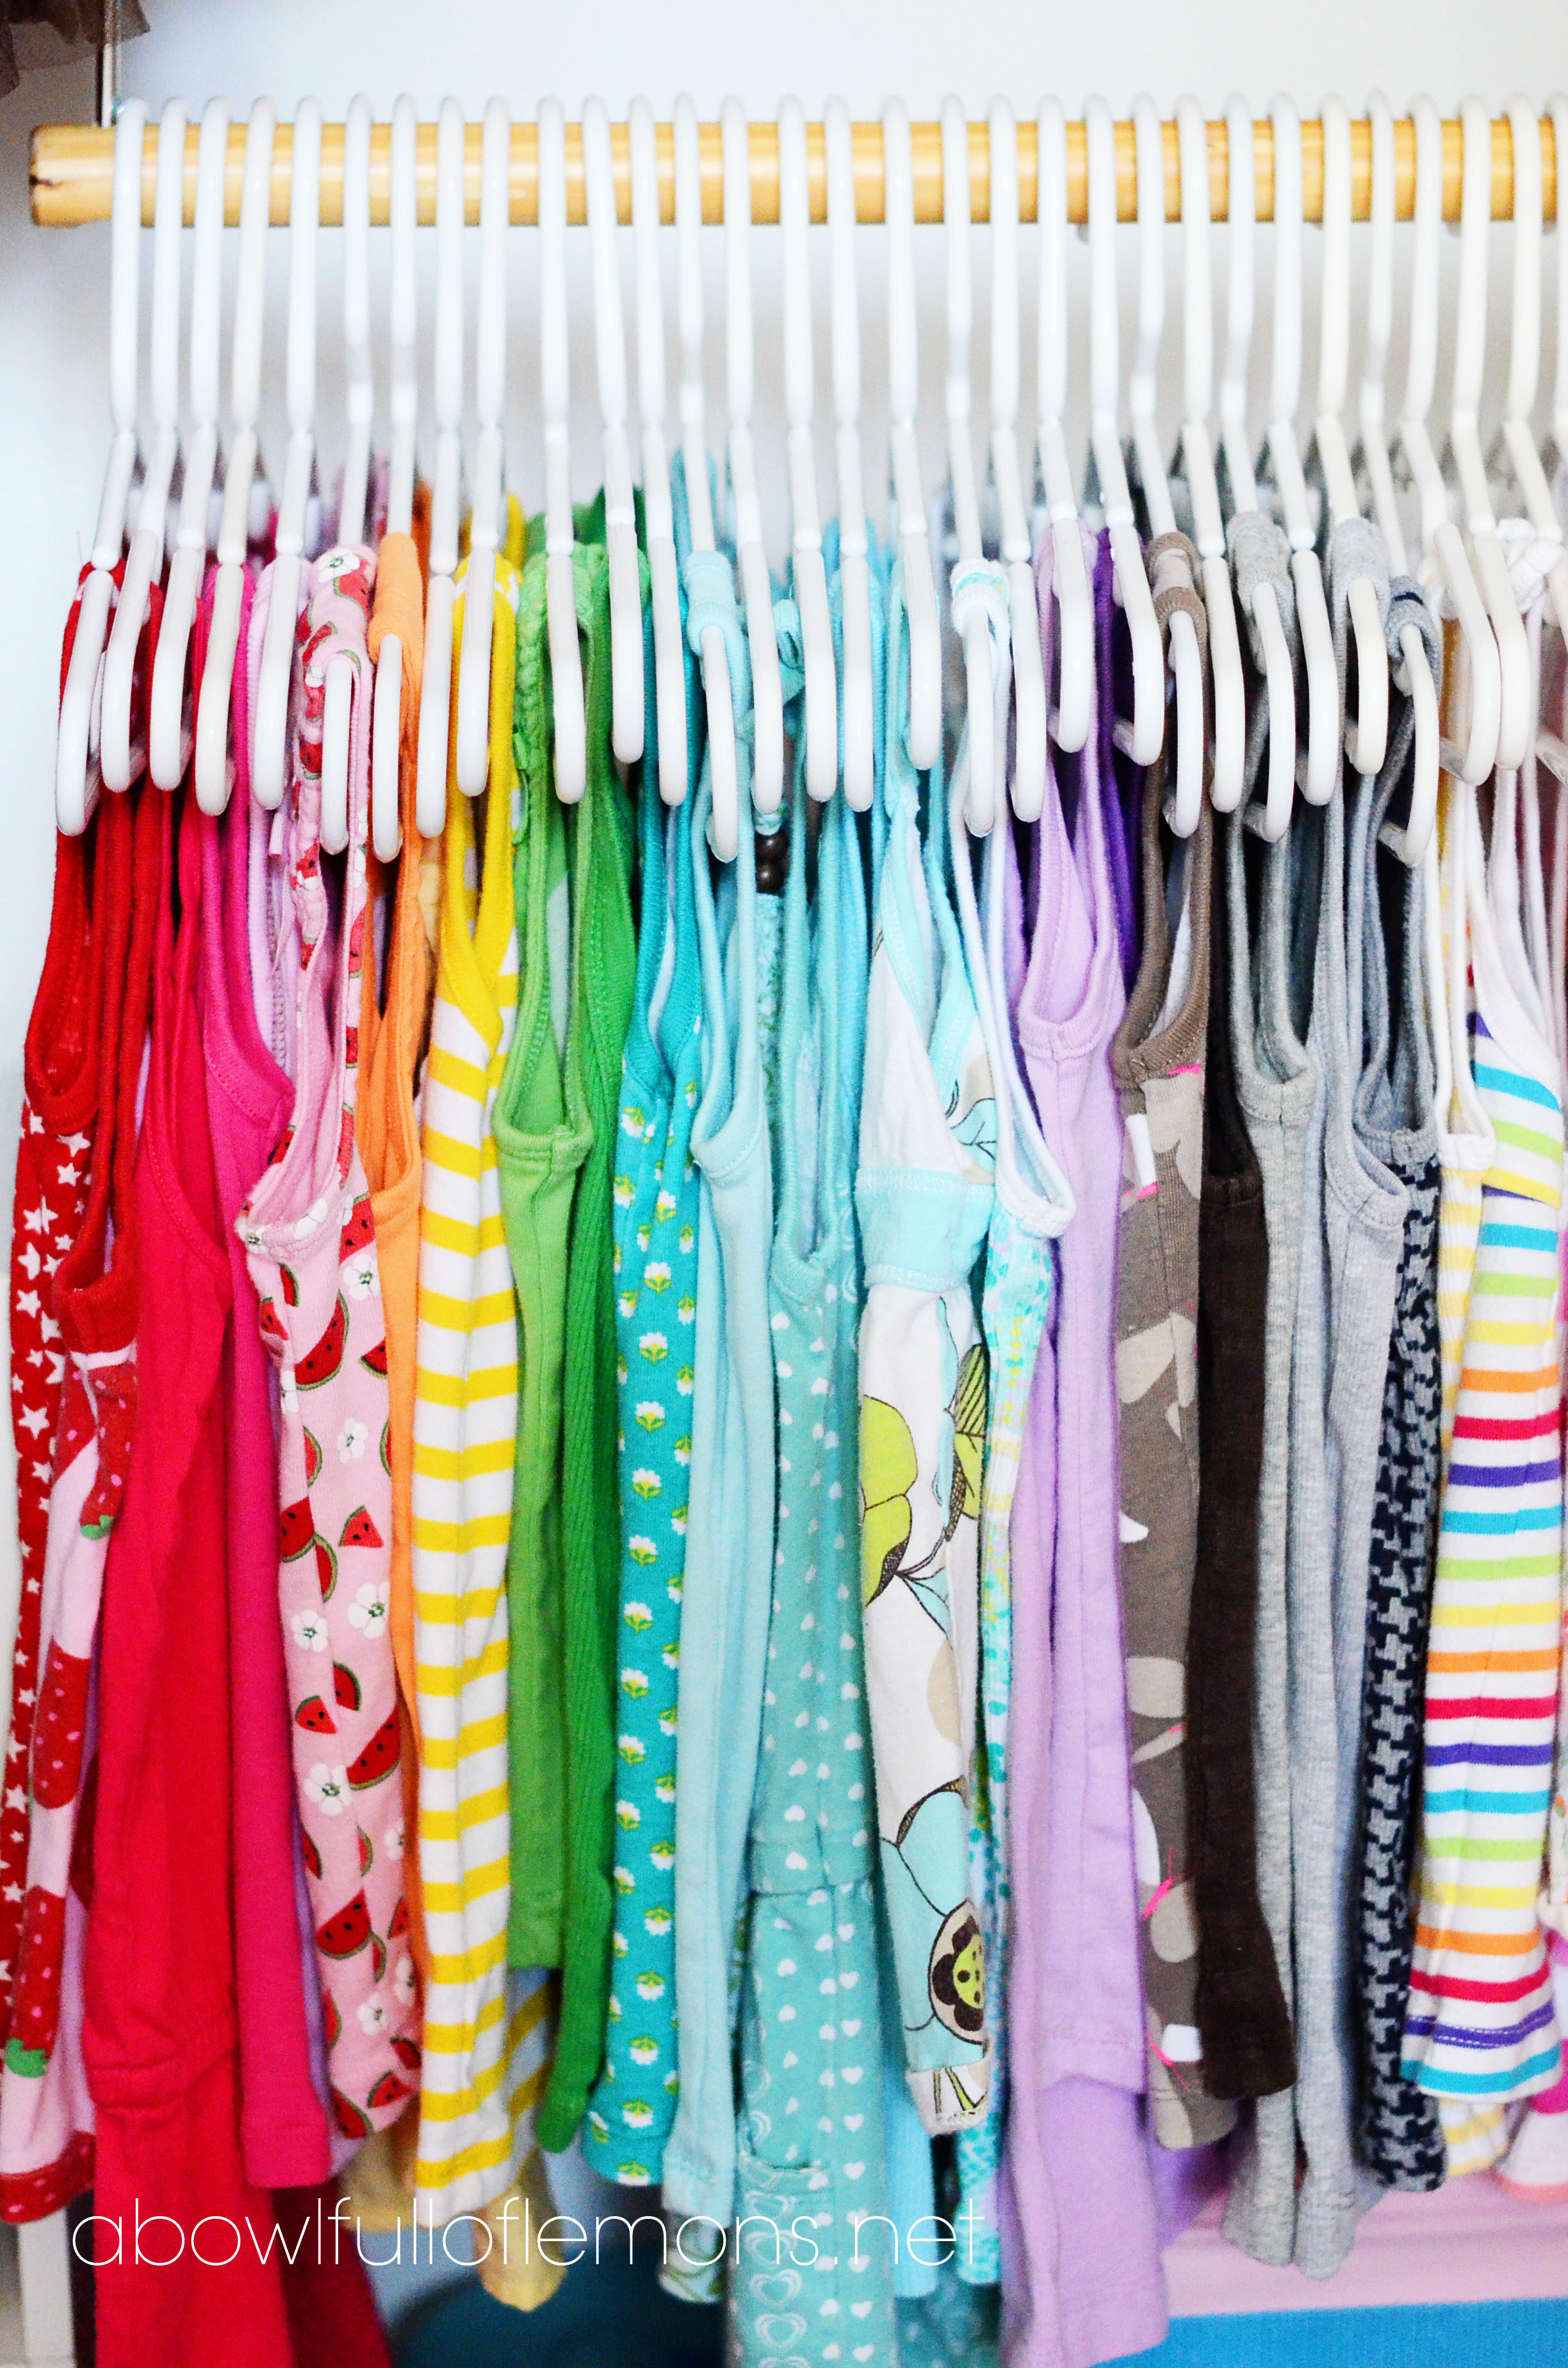 Closet filled with food clipart banner free Pants In Closet Clipart - Clipart Kid banner free